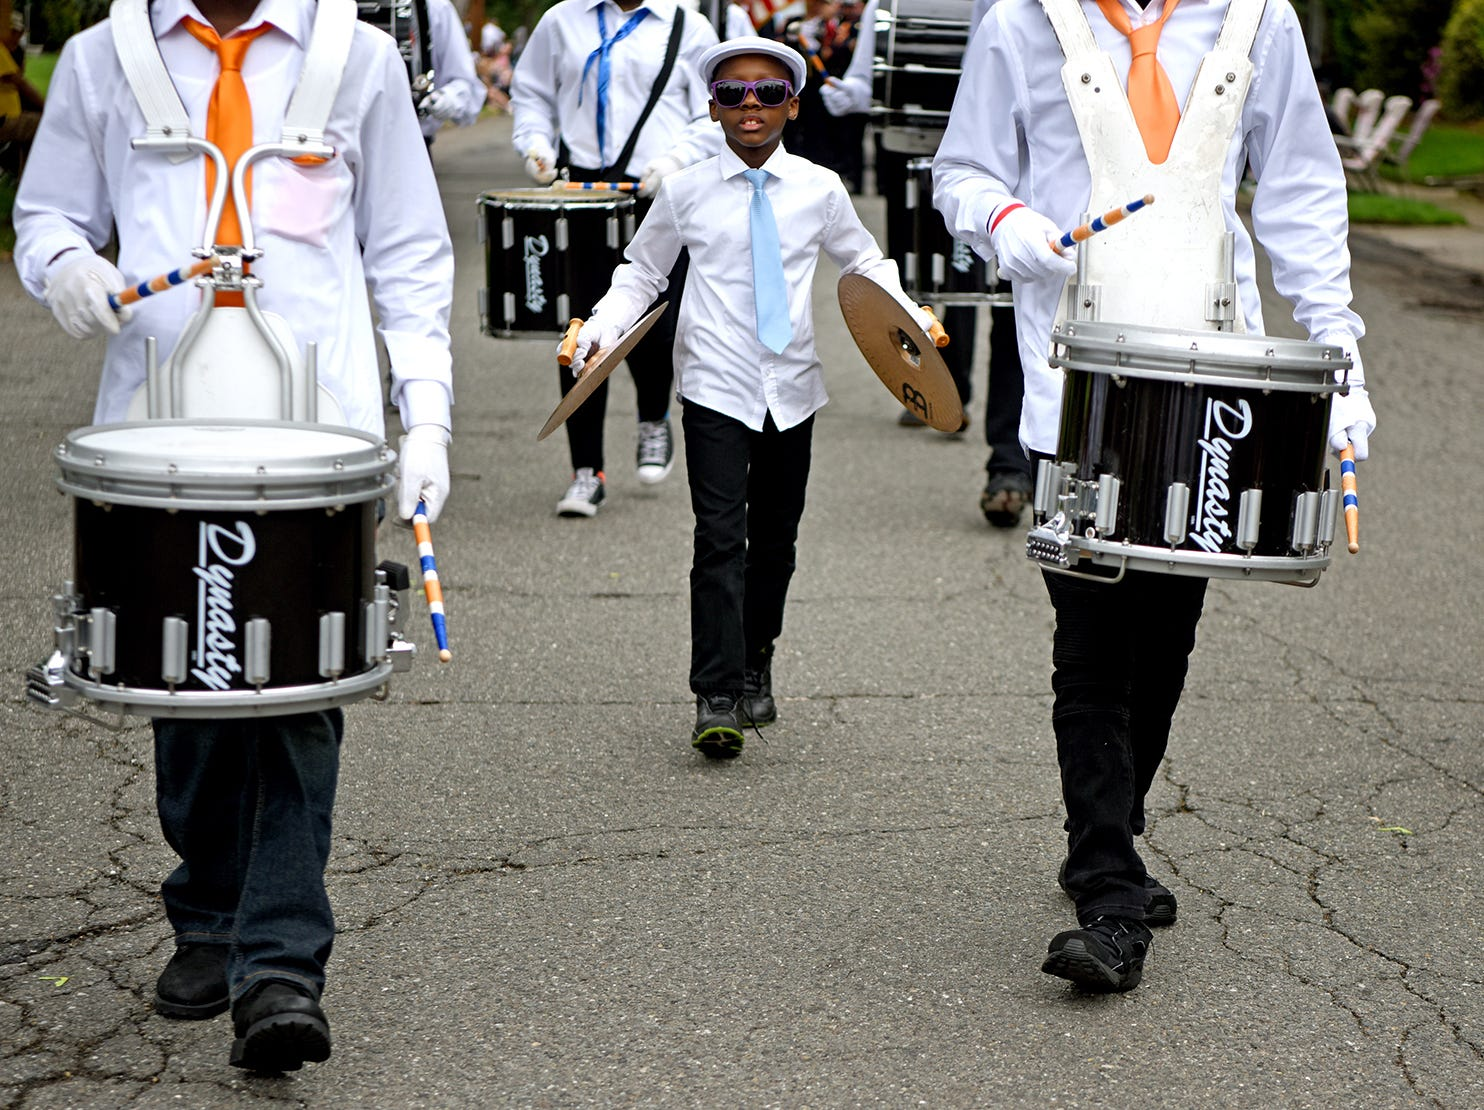 The Hawthorne Memorial Parade on Monday, May 28, 2018. A drum line from Eastside High School in Paterson performs in the parade.